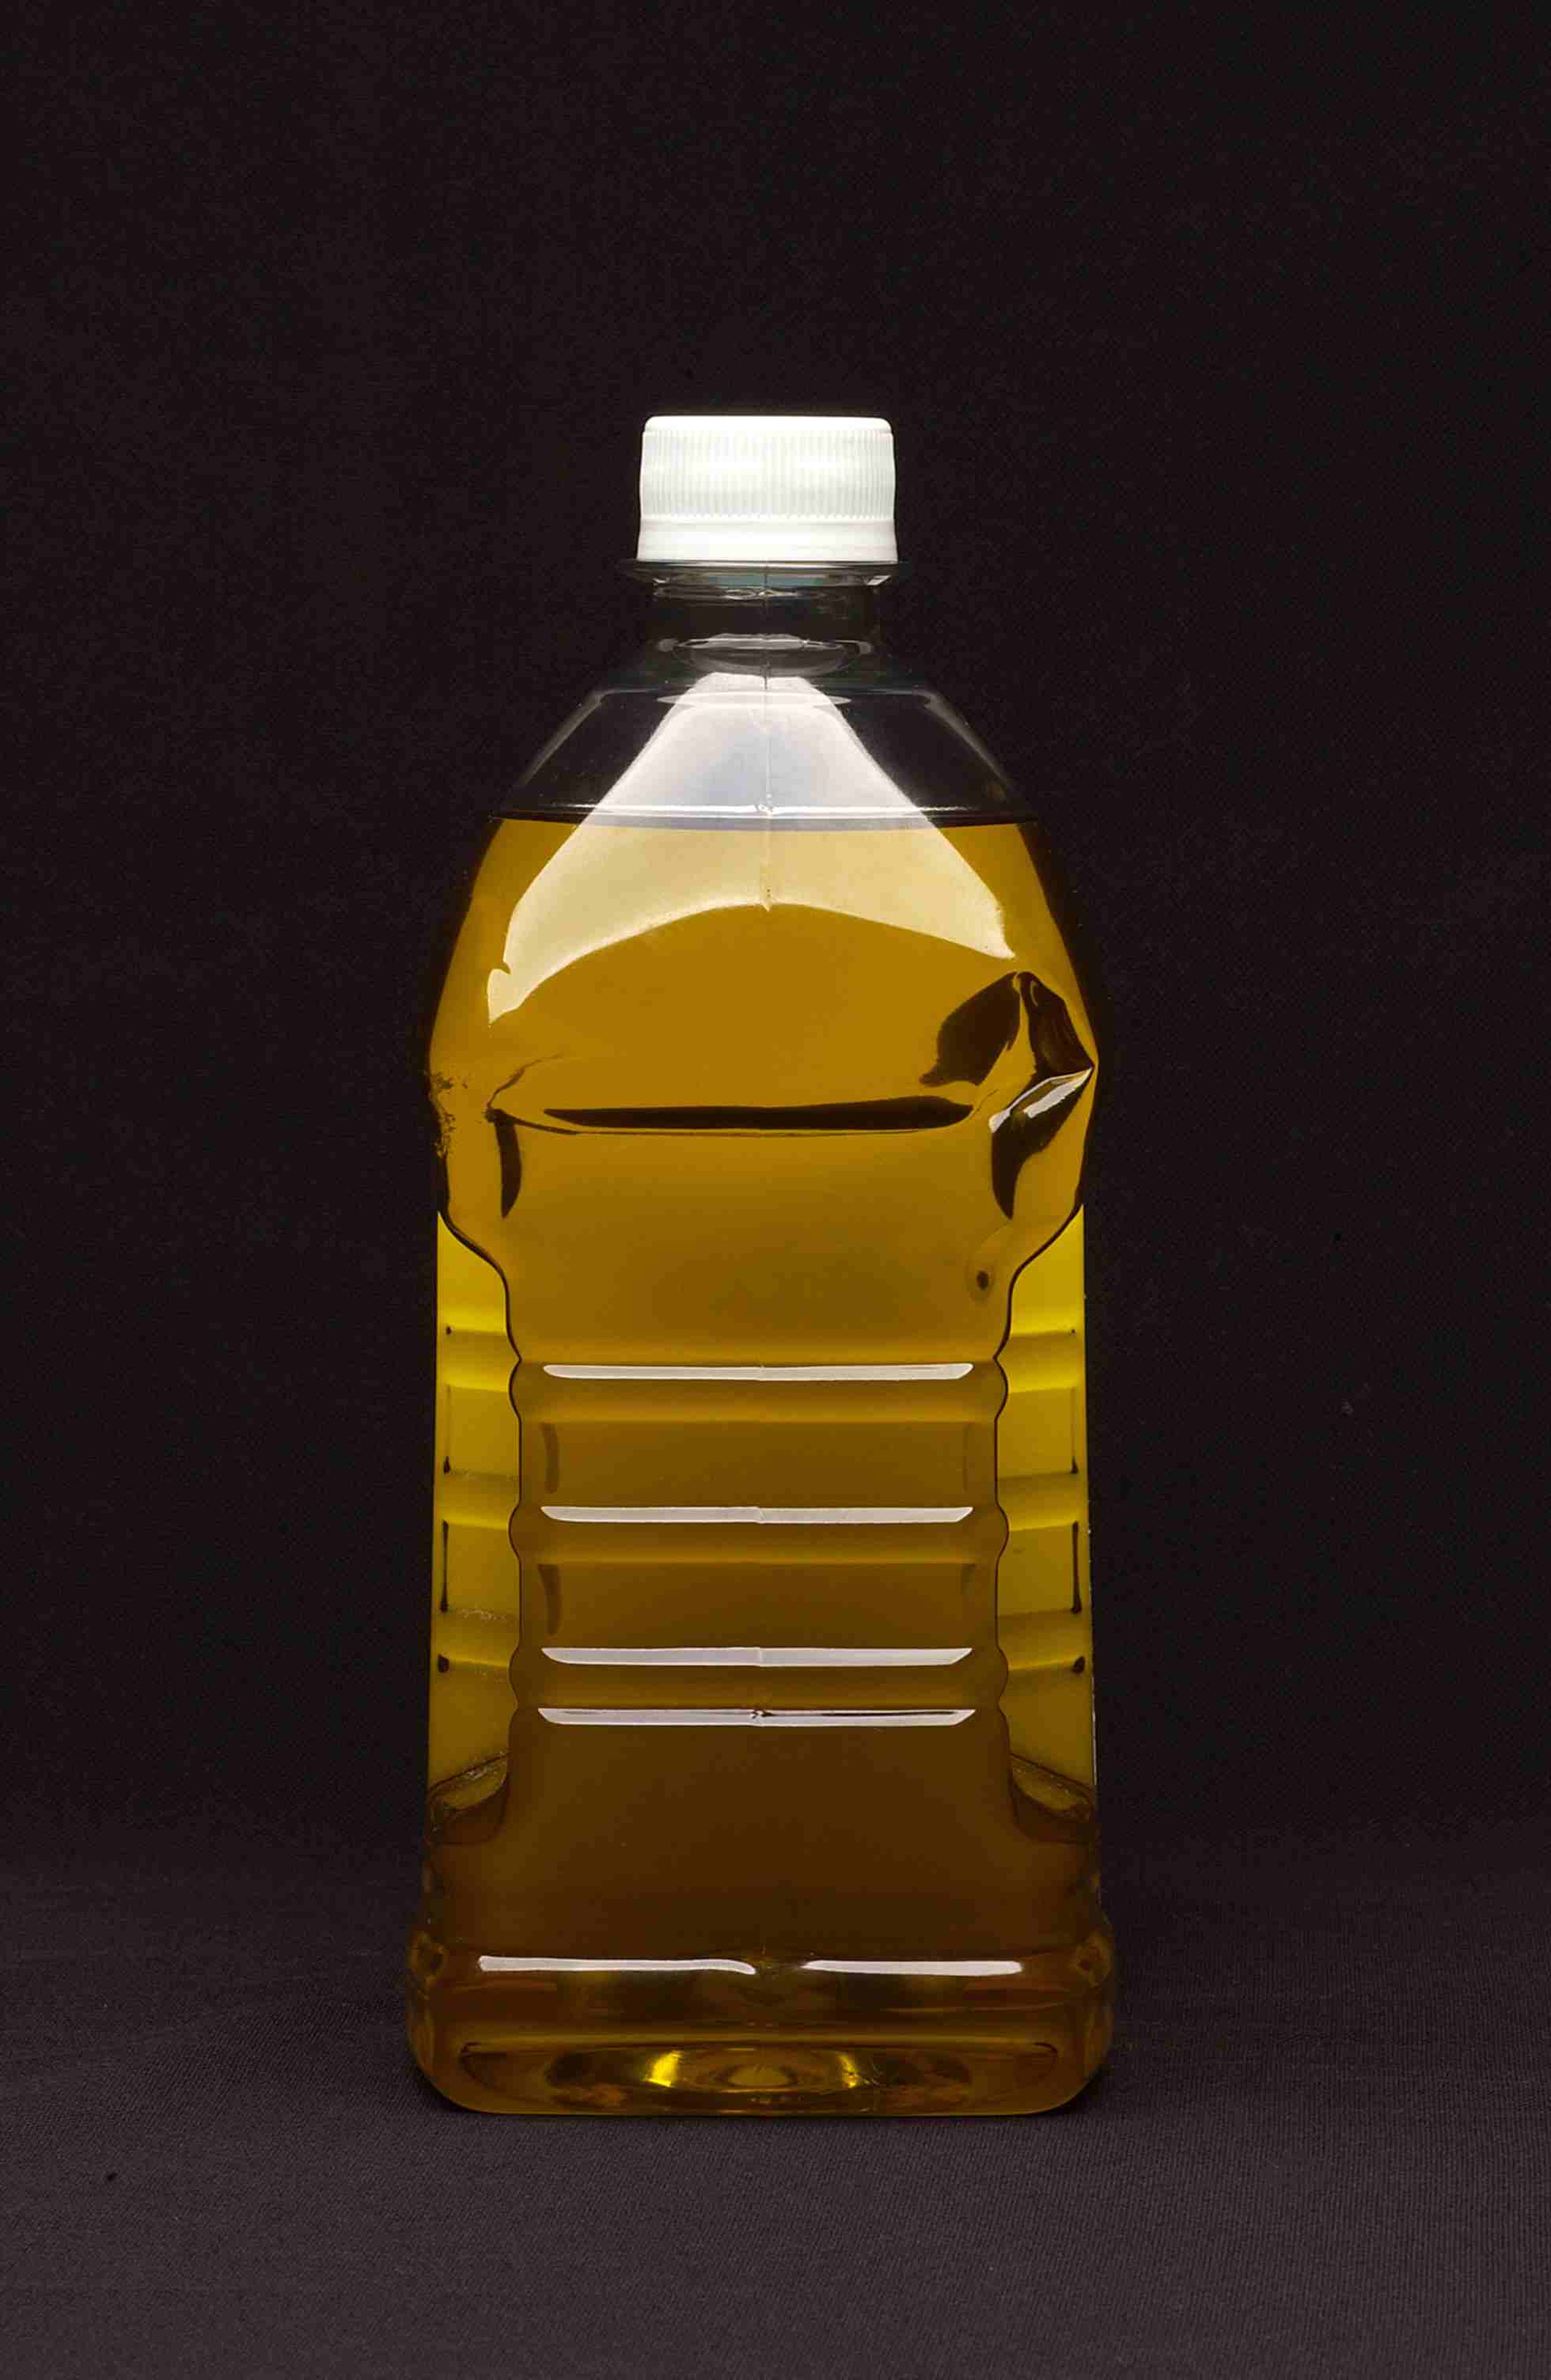 COTTON SEED OIL,COCONUT OIL,REFINED RAPESEED OIL,REFINED SOYBEANS OIL,REFINED SUNFLOWER OIL,REFINED CORN OIL